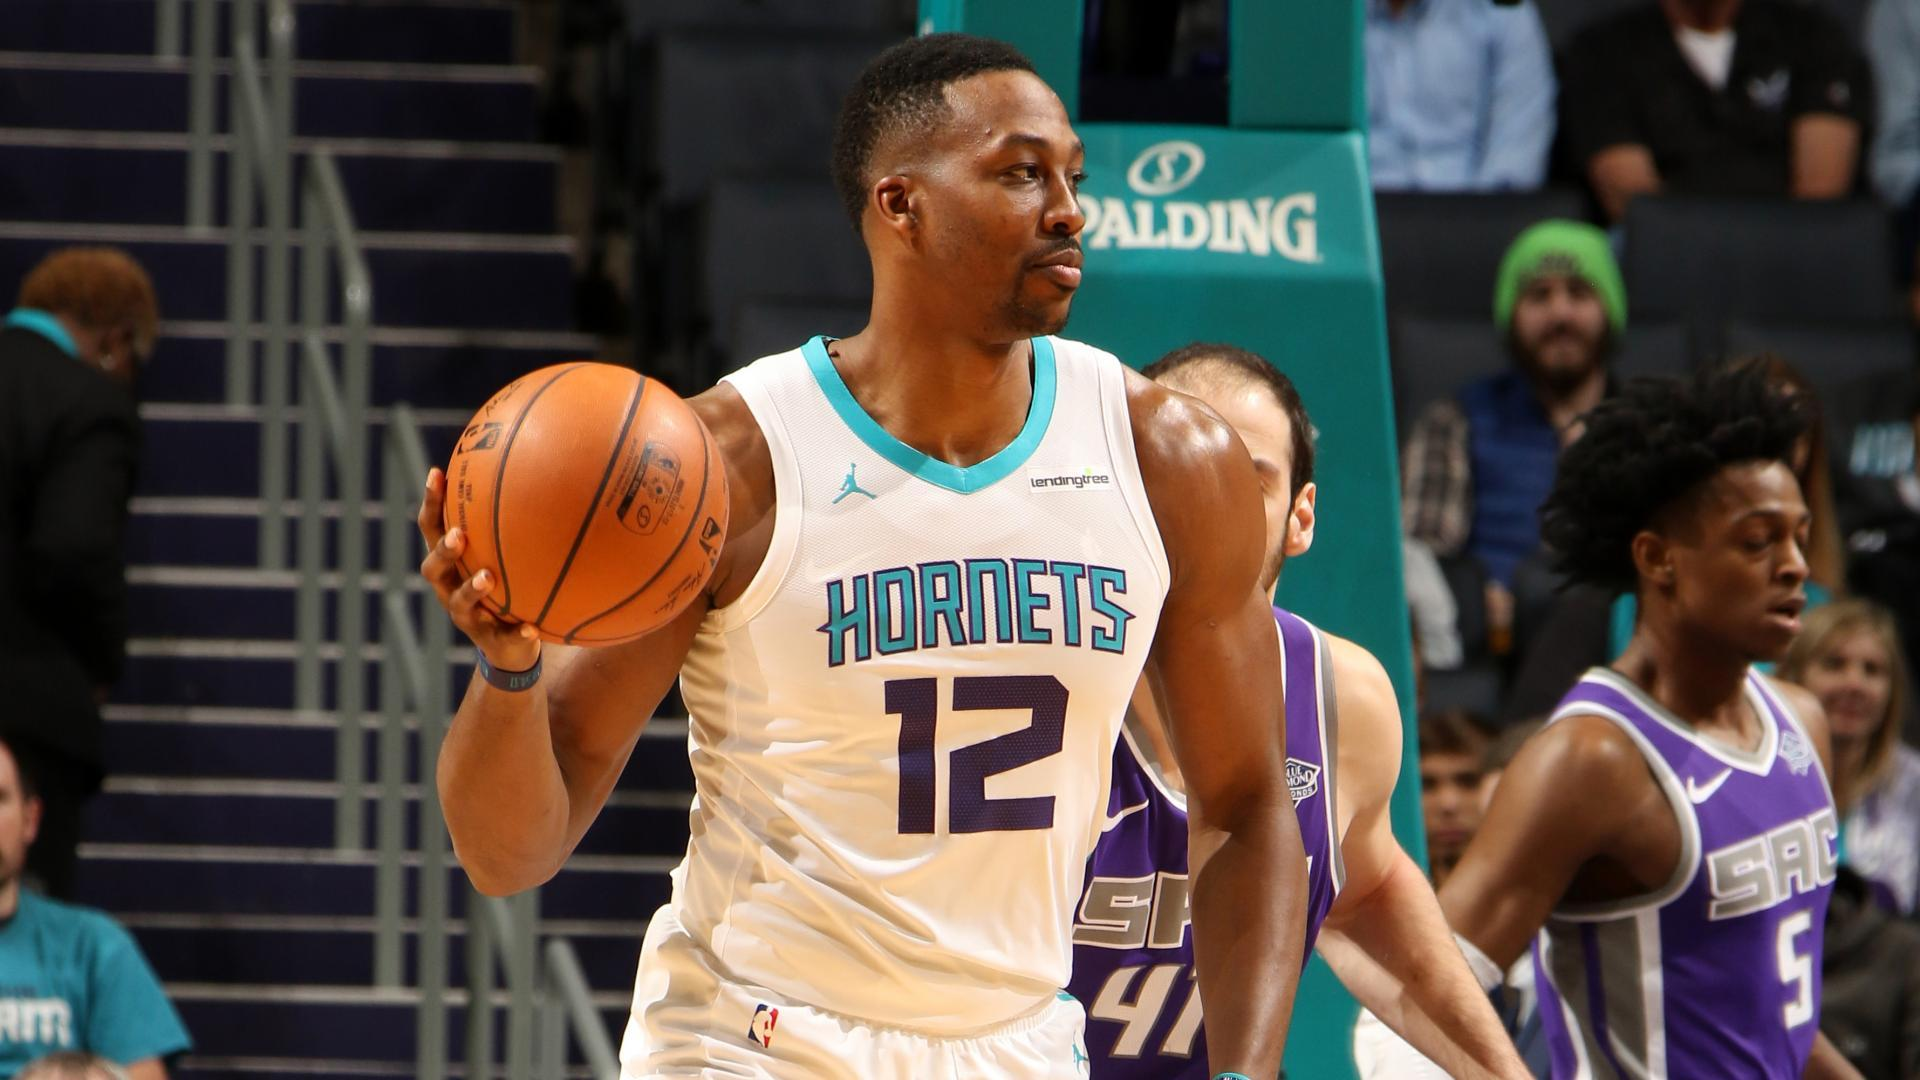 23.01.18 Move of the Night: Dwight Howard